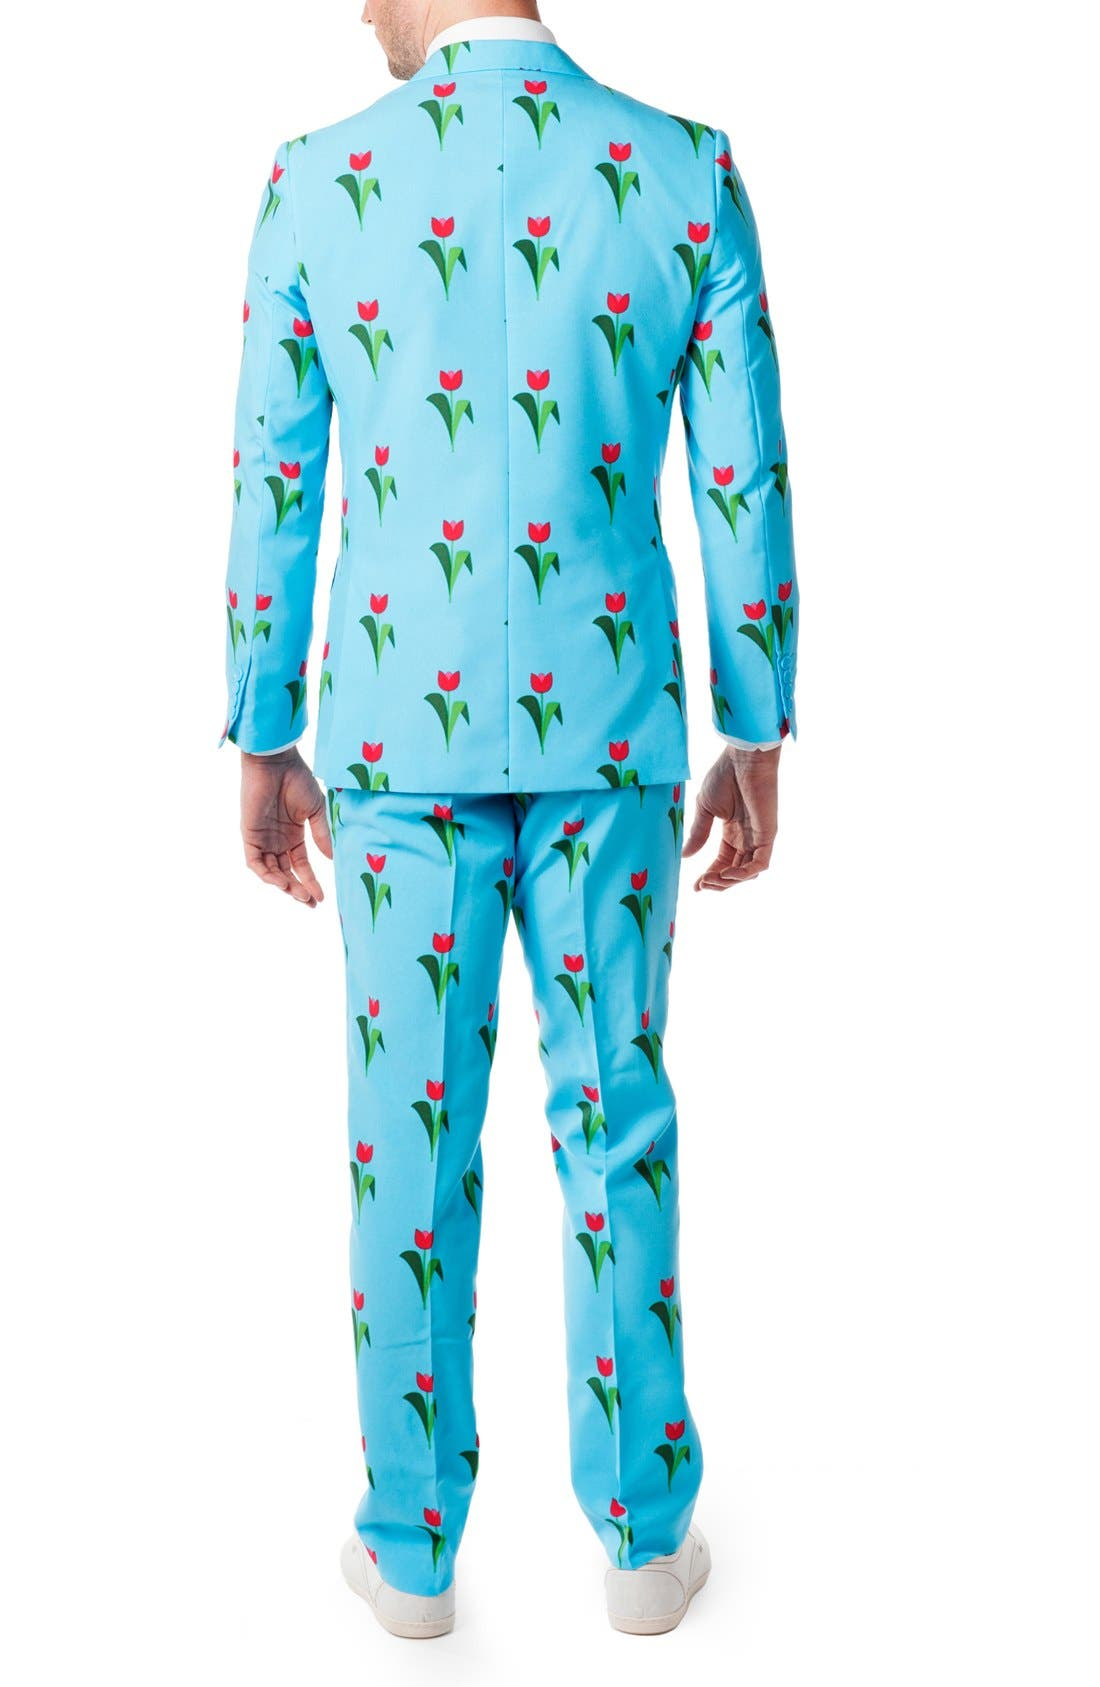 'Tulips from Amsterdam' Trim Fit Two-Piece Suit with Tie,                             Alternate thumbnail 2, color,                             Blue